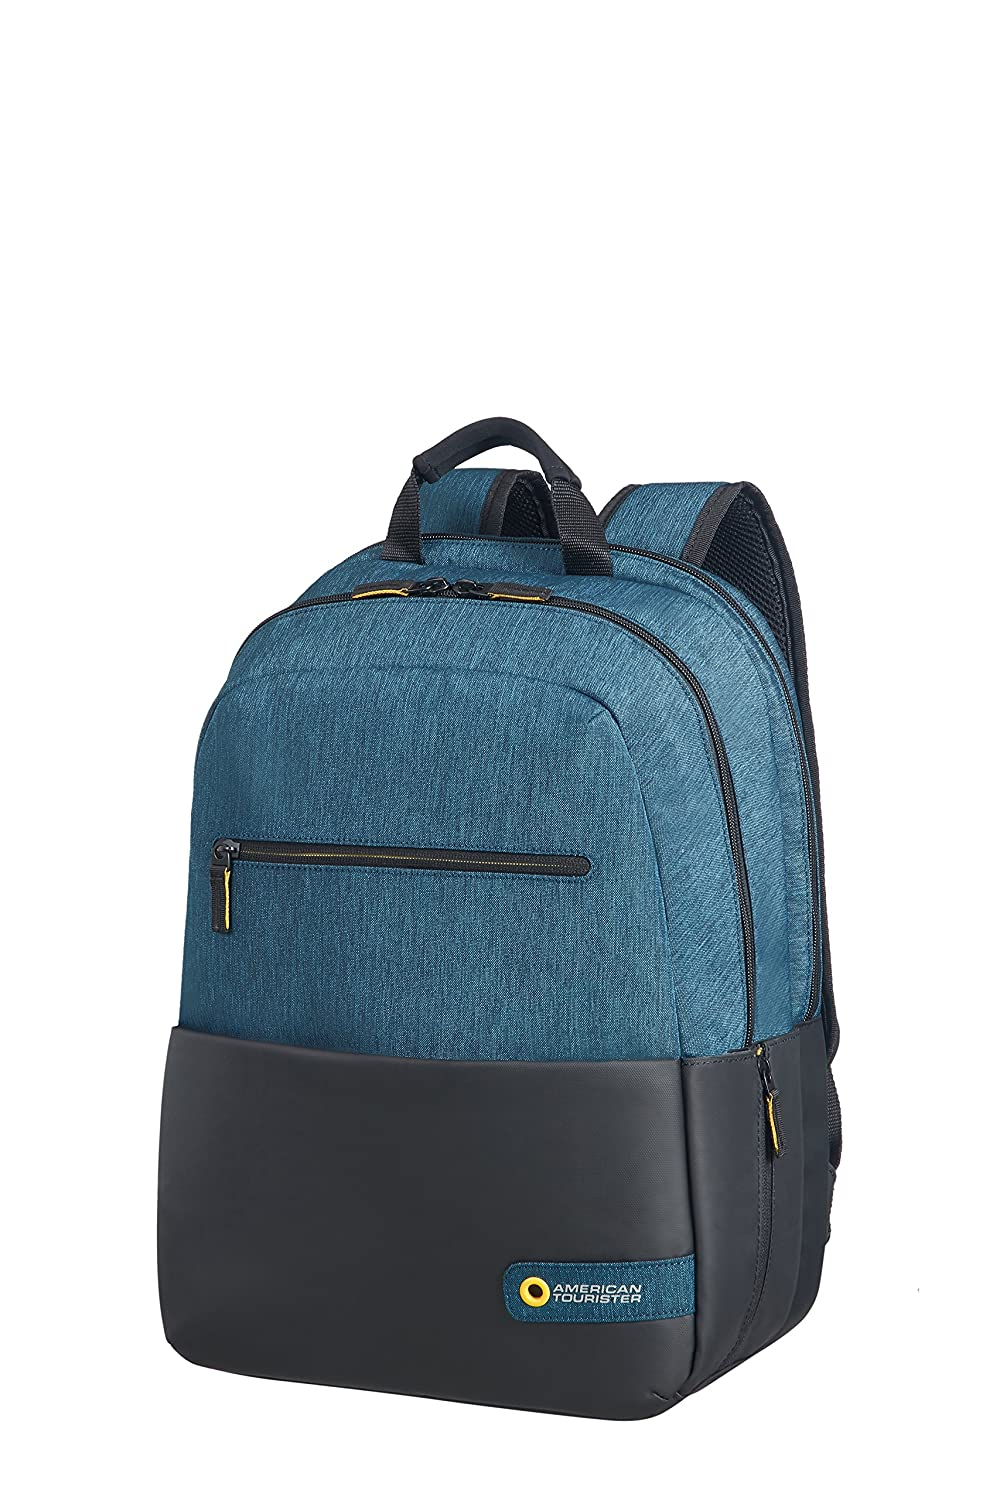 American Tourister City Drift Zaino Casual, 40 cm, 20 litri, Black/Blue 80525/2642